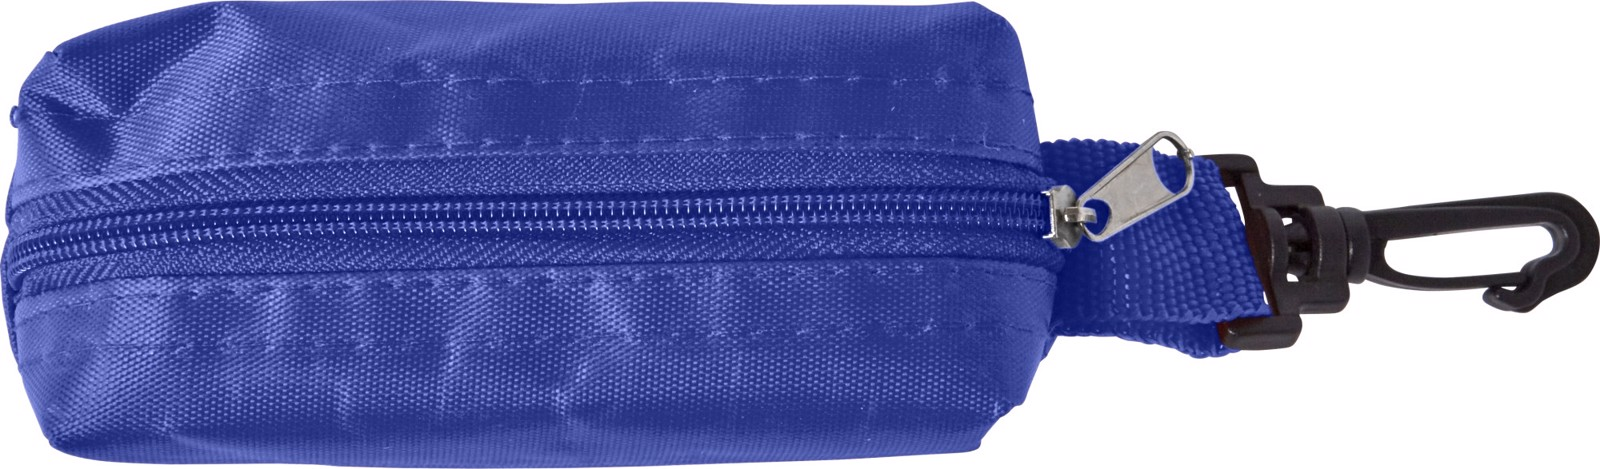 Polyester pouch with pencils - Blue